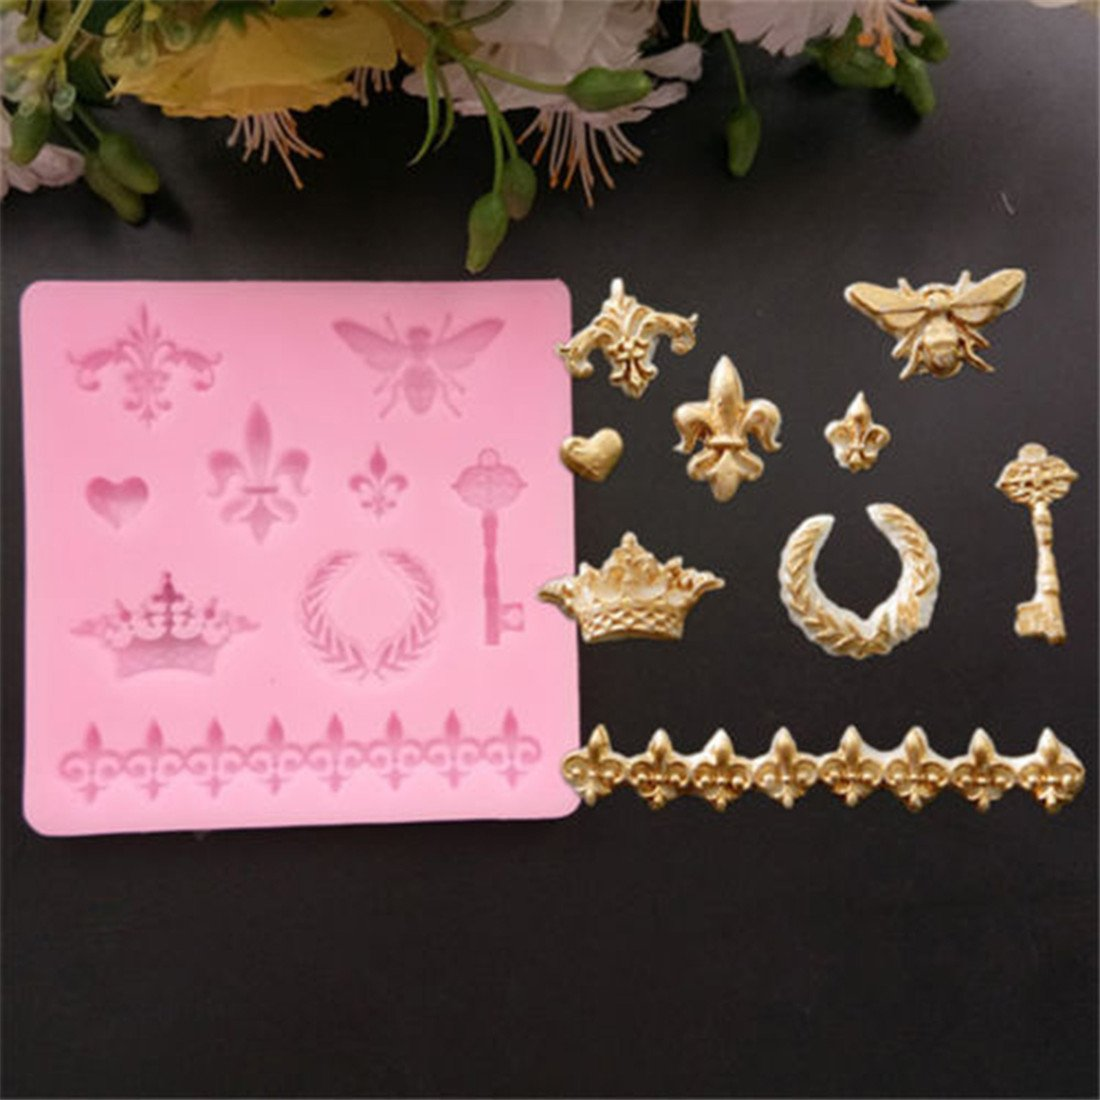 Yesiidor Vintage Pattern Cake Mold Bee Crown Key And Heart Shape DIY Fondant Chocolate Candy Mould Cake Decor Baking Tools